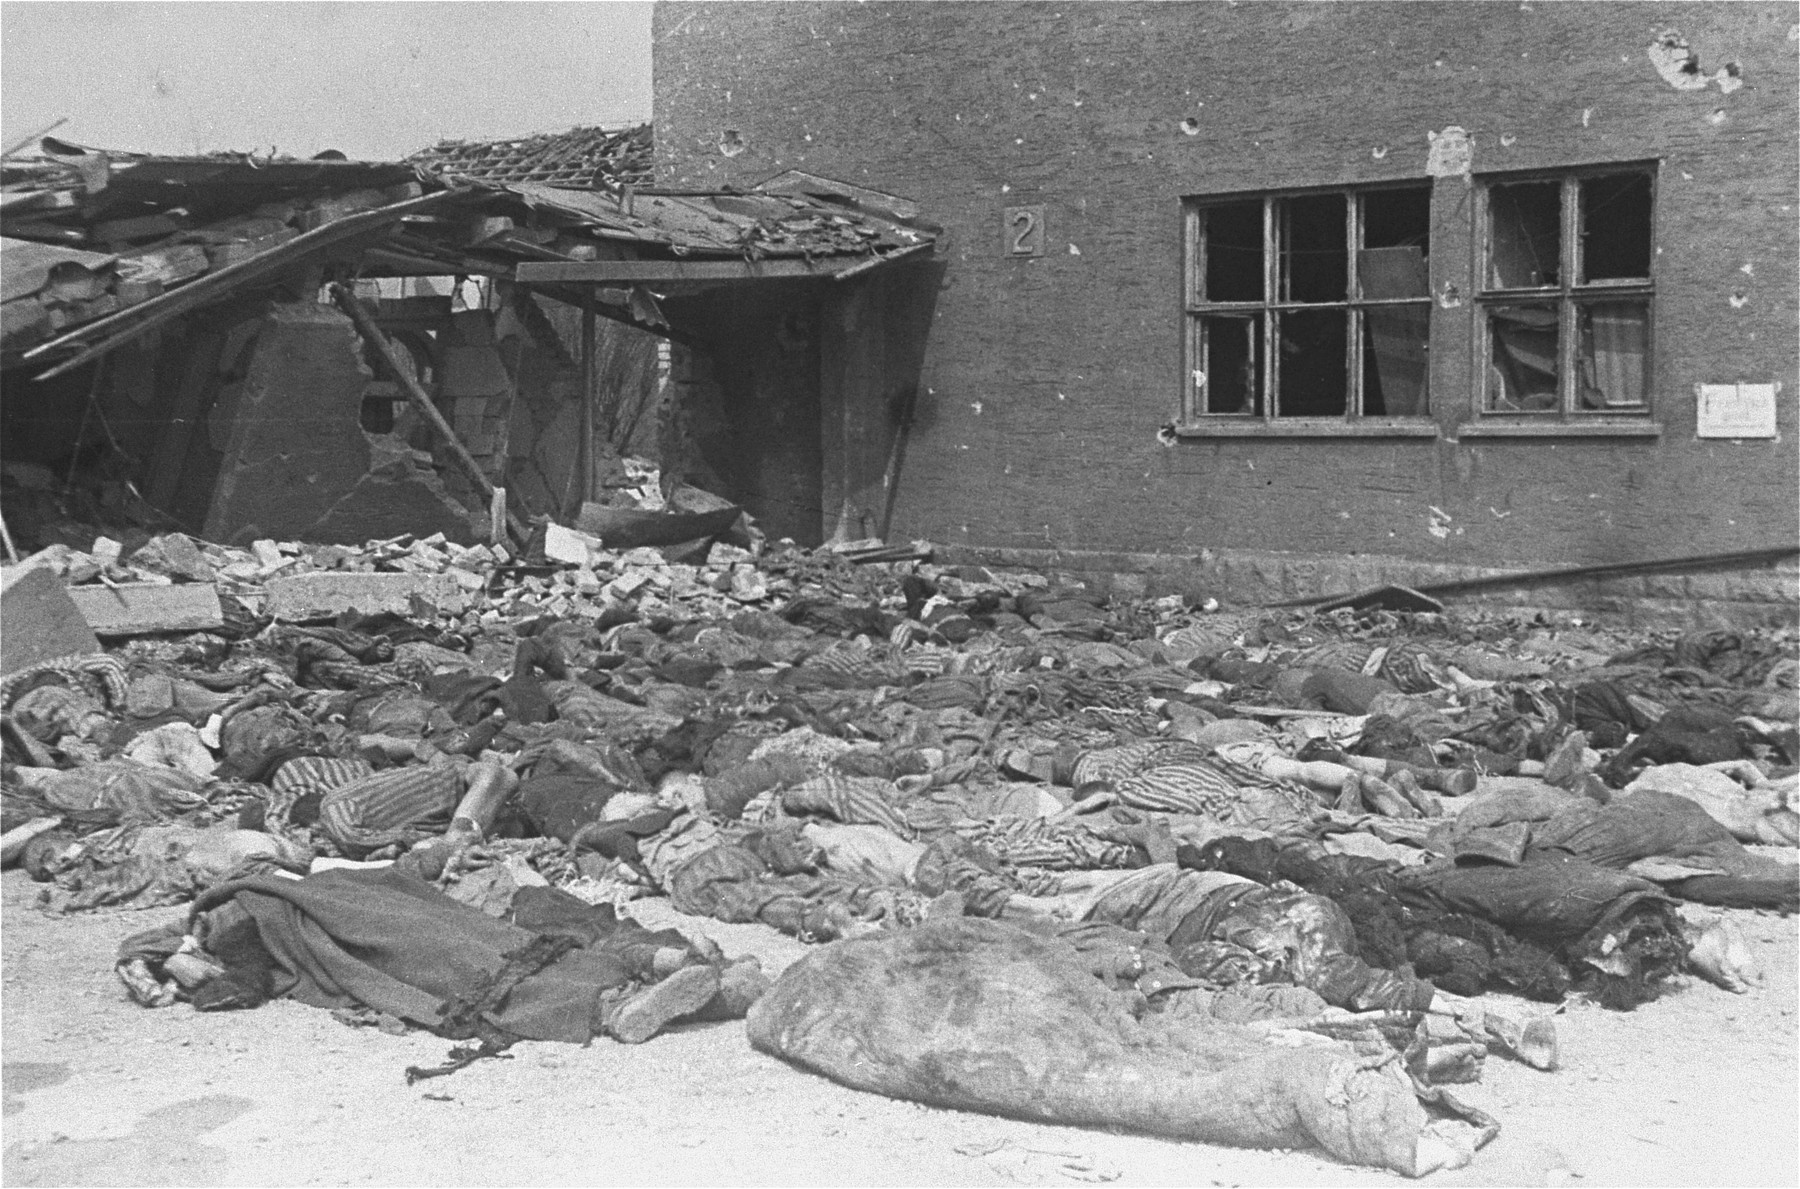 The bodies of prisoners are laid out in rows on the ground in the newly liberated Nordhausen concentration camp.